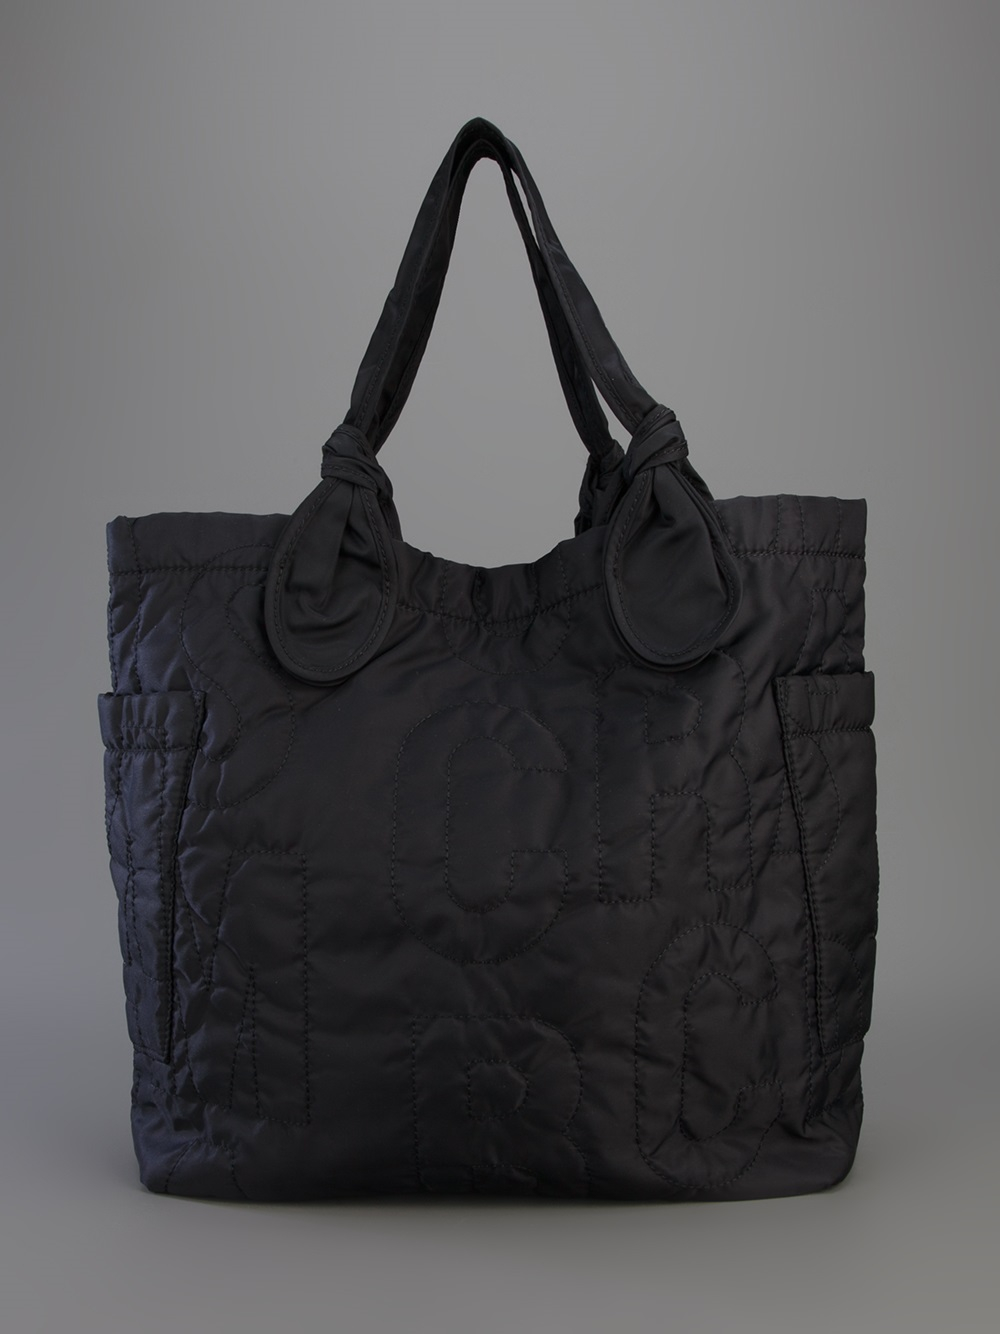 Marc By Marc Jacobs Padded Shopper Tote in Black